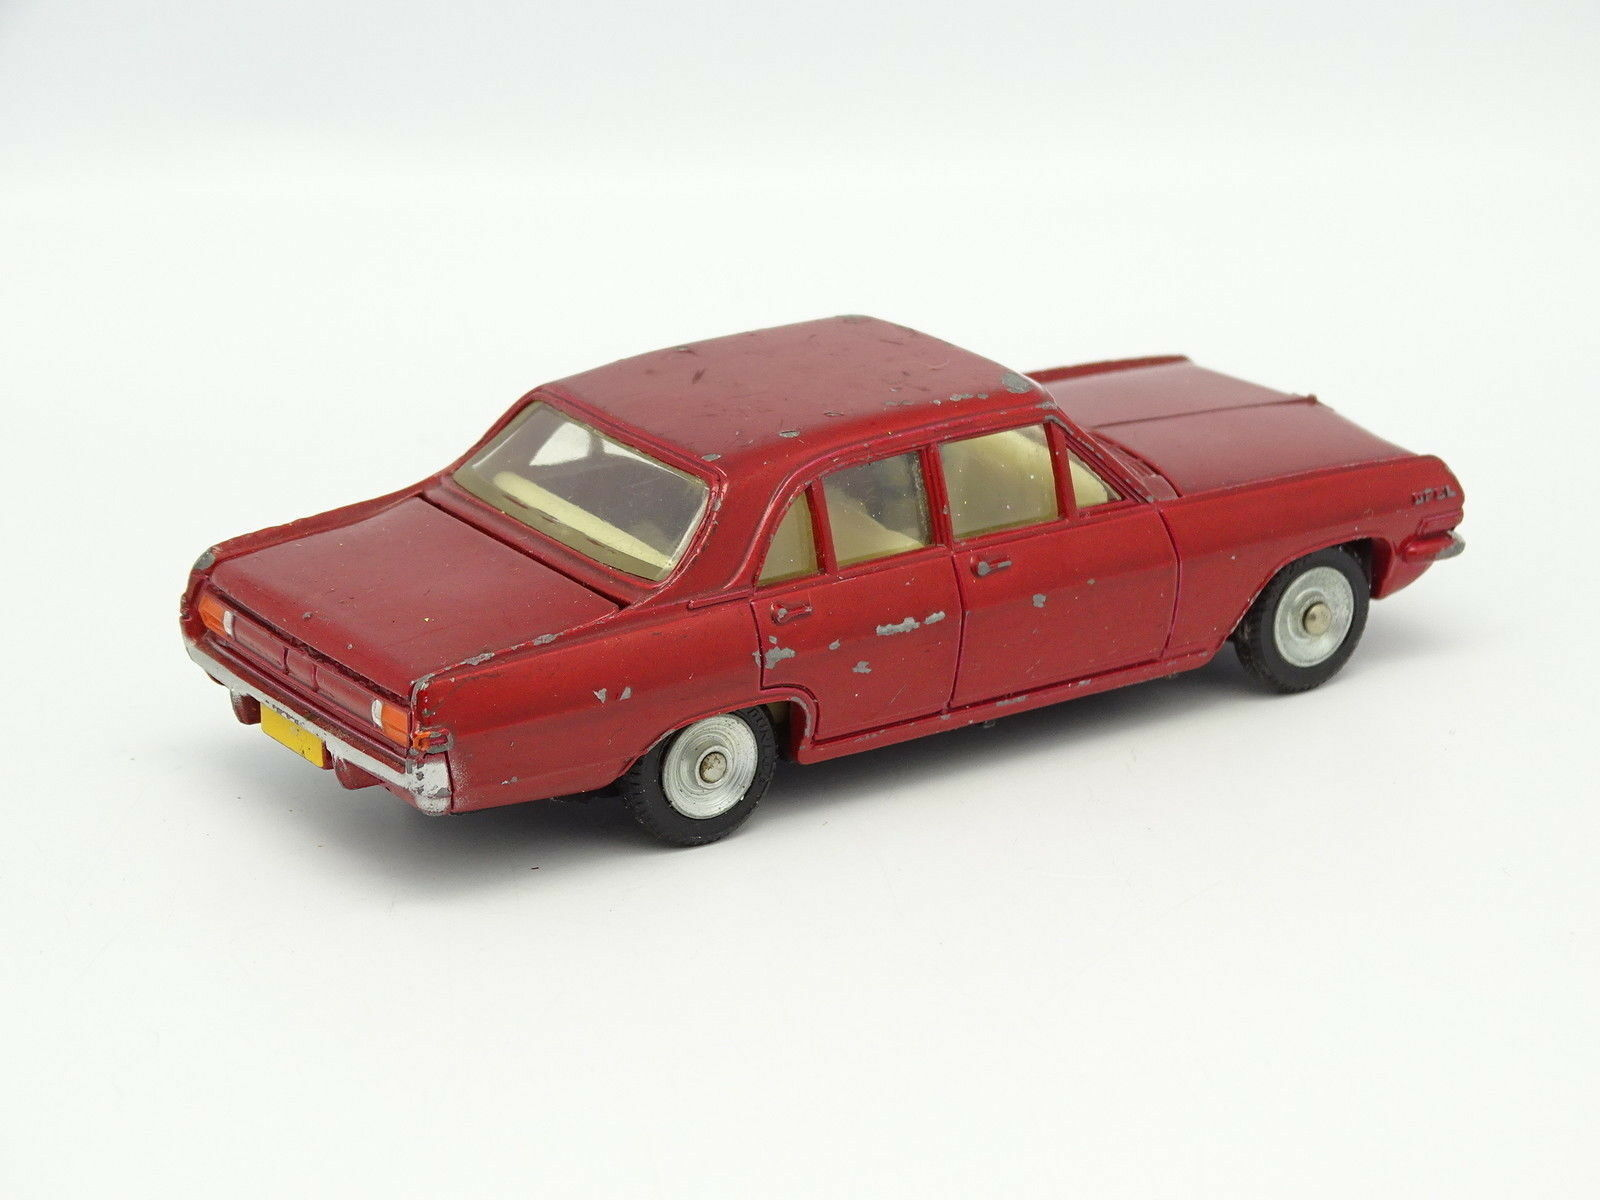 Dinky Toys F SB 1 43 43 43 - Opel Admiral red 513 b1a576